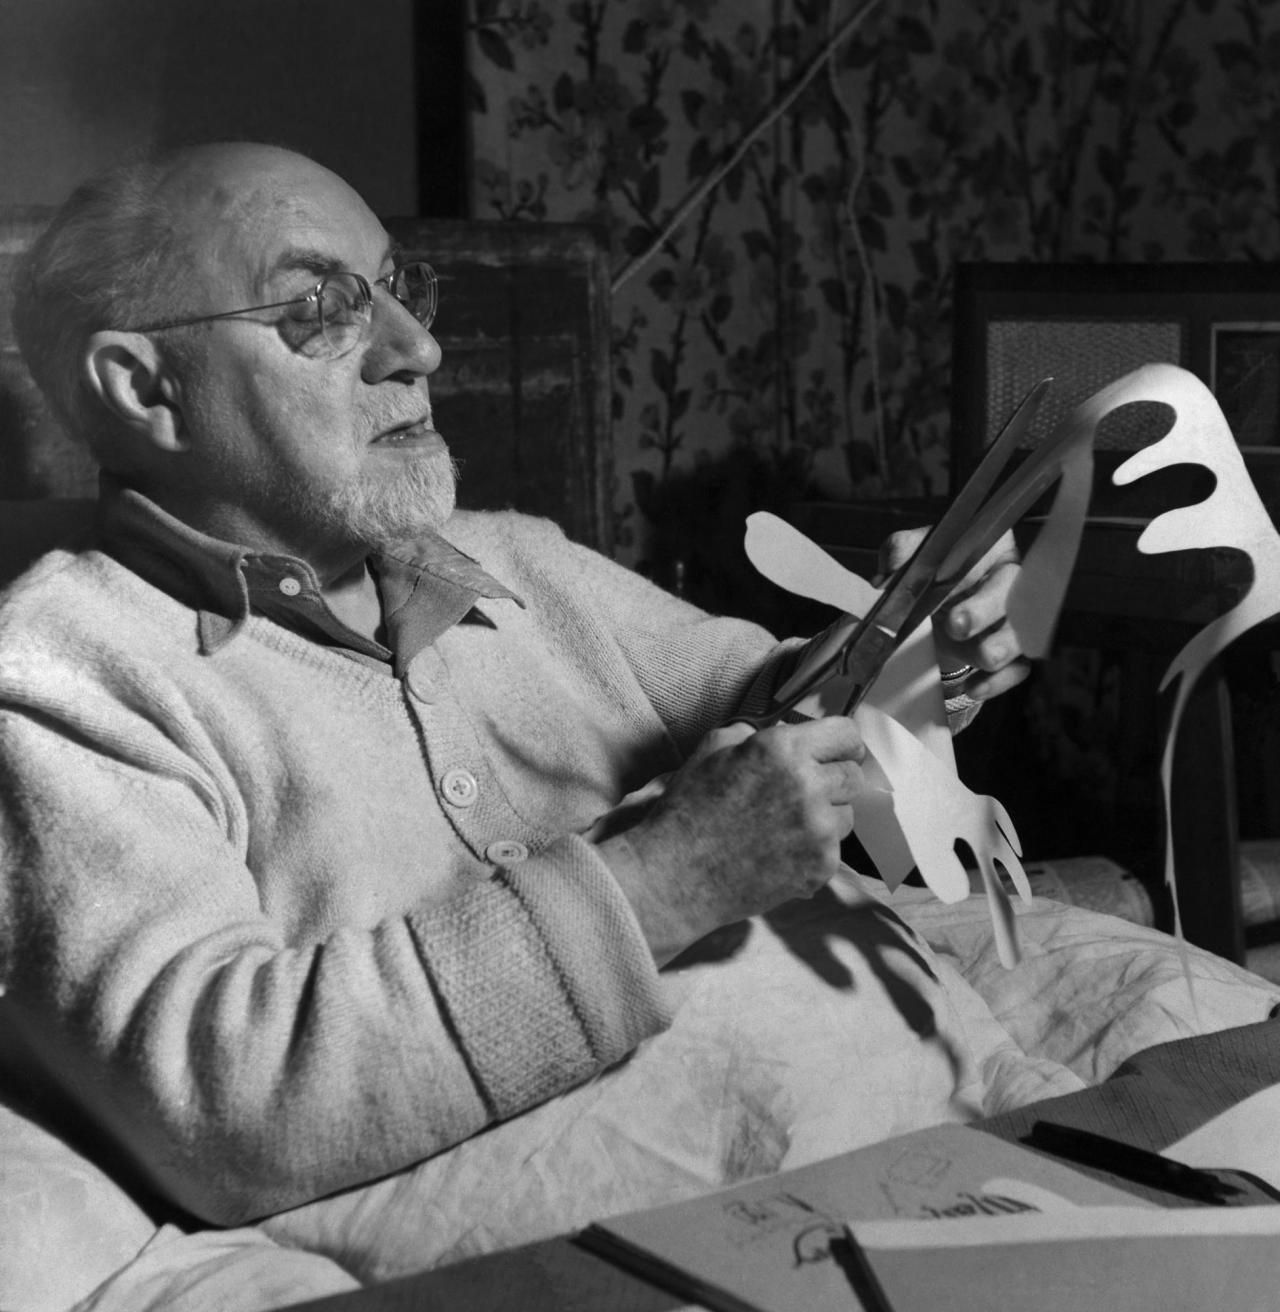 Henri Matisse working on paper cut out, n.d.